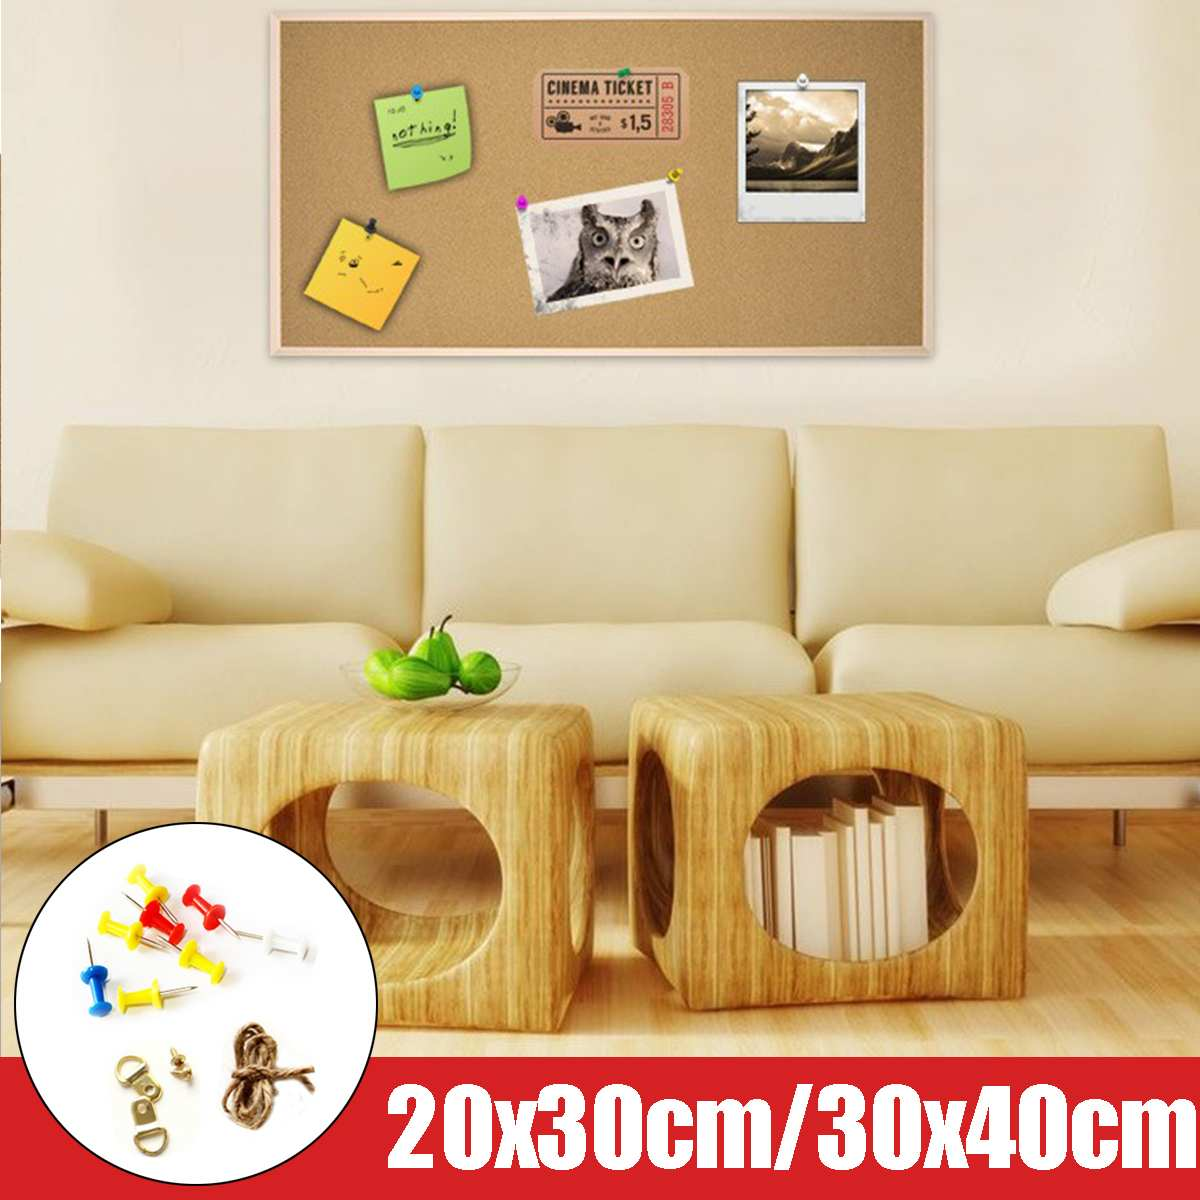 Cork Board Drawing Board Pine Wood Frame White Boards Home Office Decorative For Message Notice Board